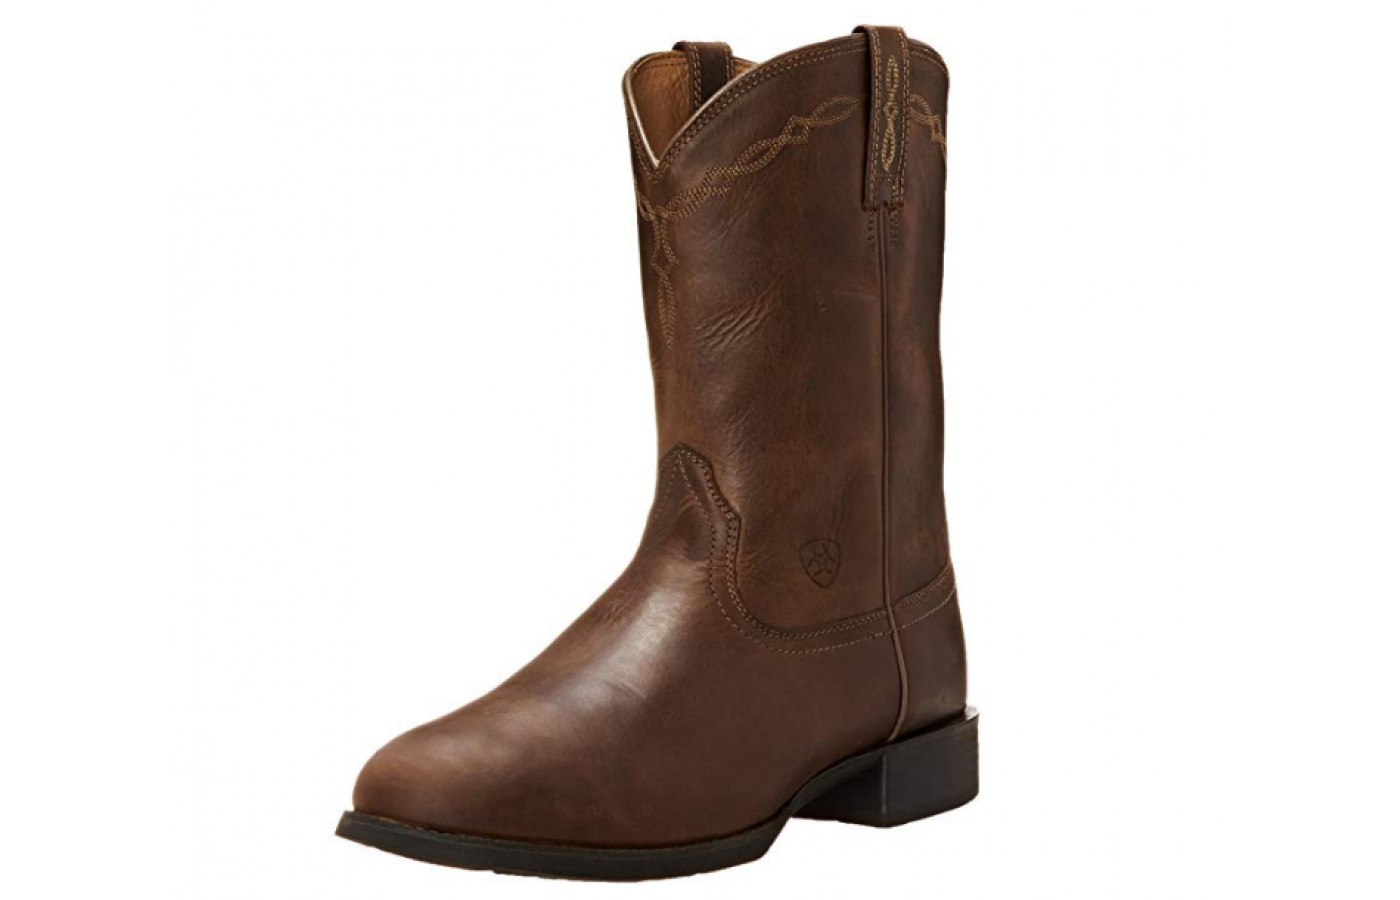 Ariat Heritage Roper Angled